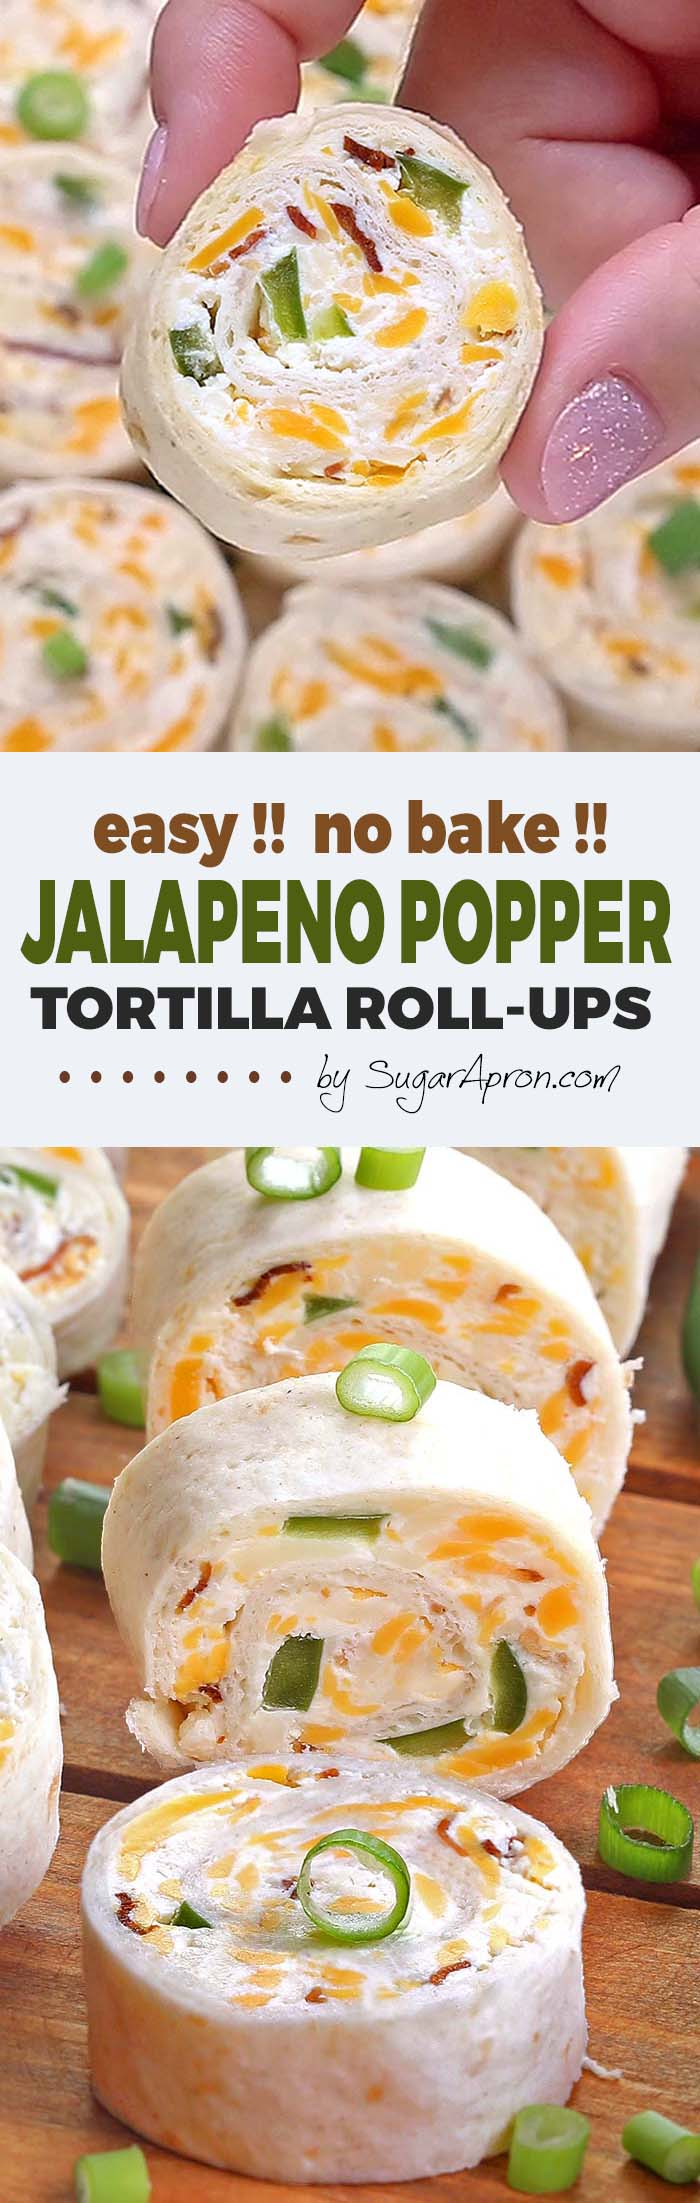 Jalapeno Popper Tortilla Roll Ups are a simple and fun bite sized spin on ever popular jalapeno poppers! Always a crowd pleaser, perfect for game day party.